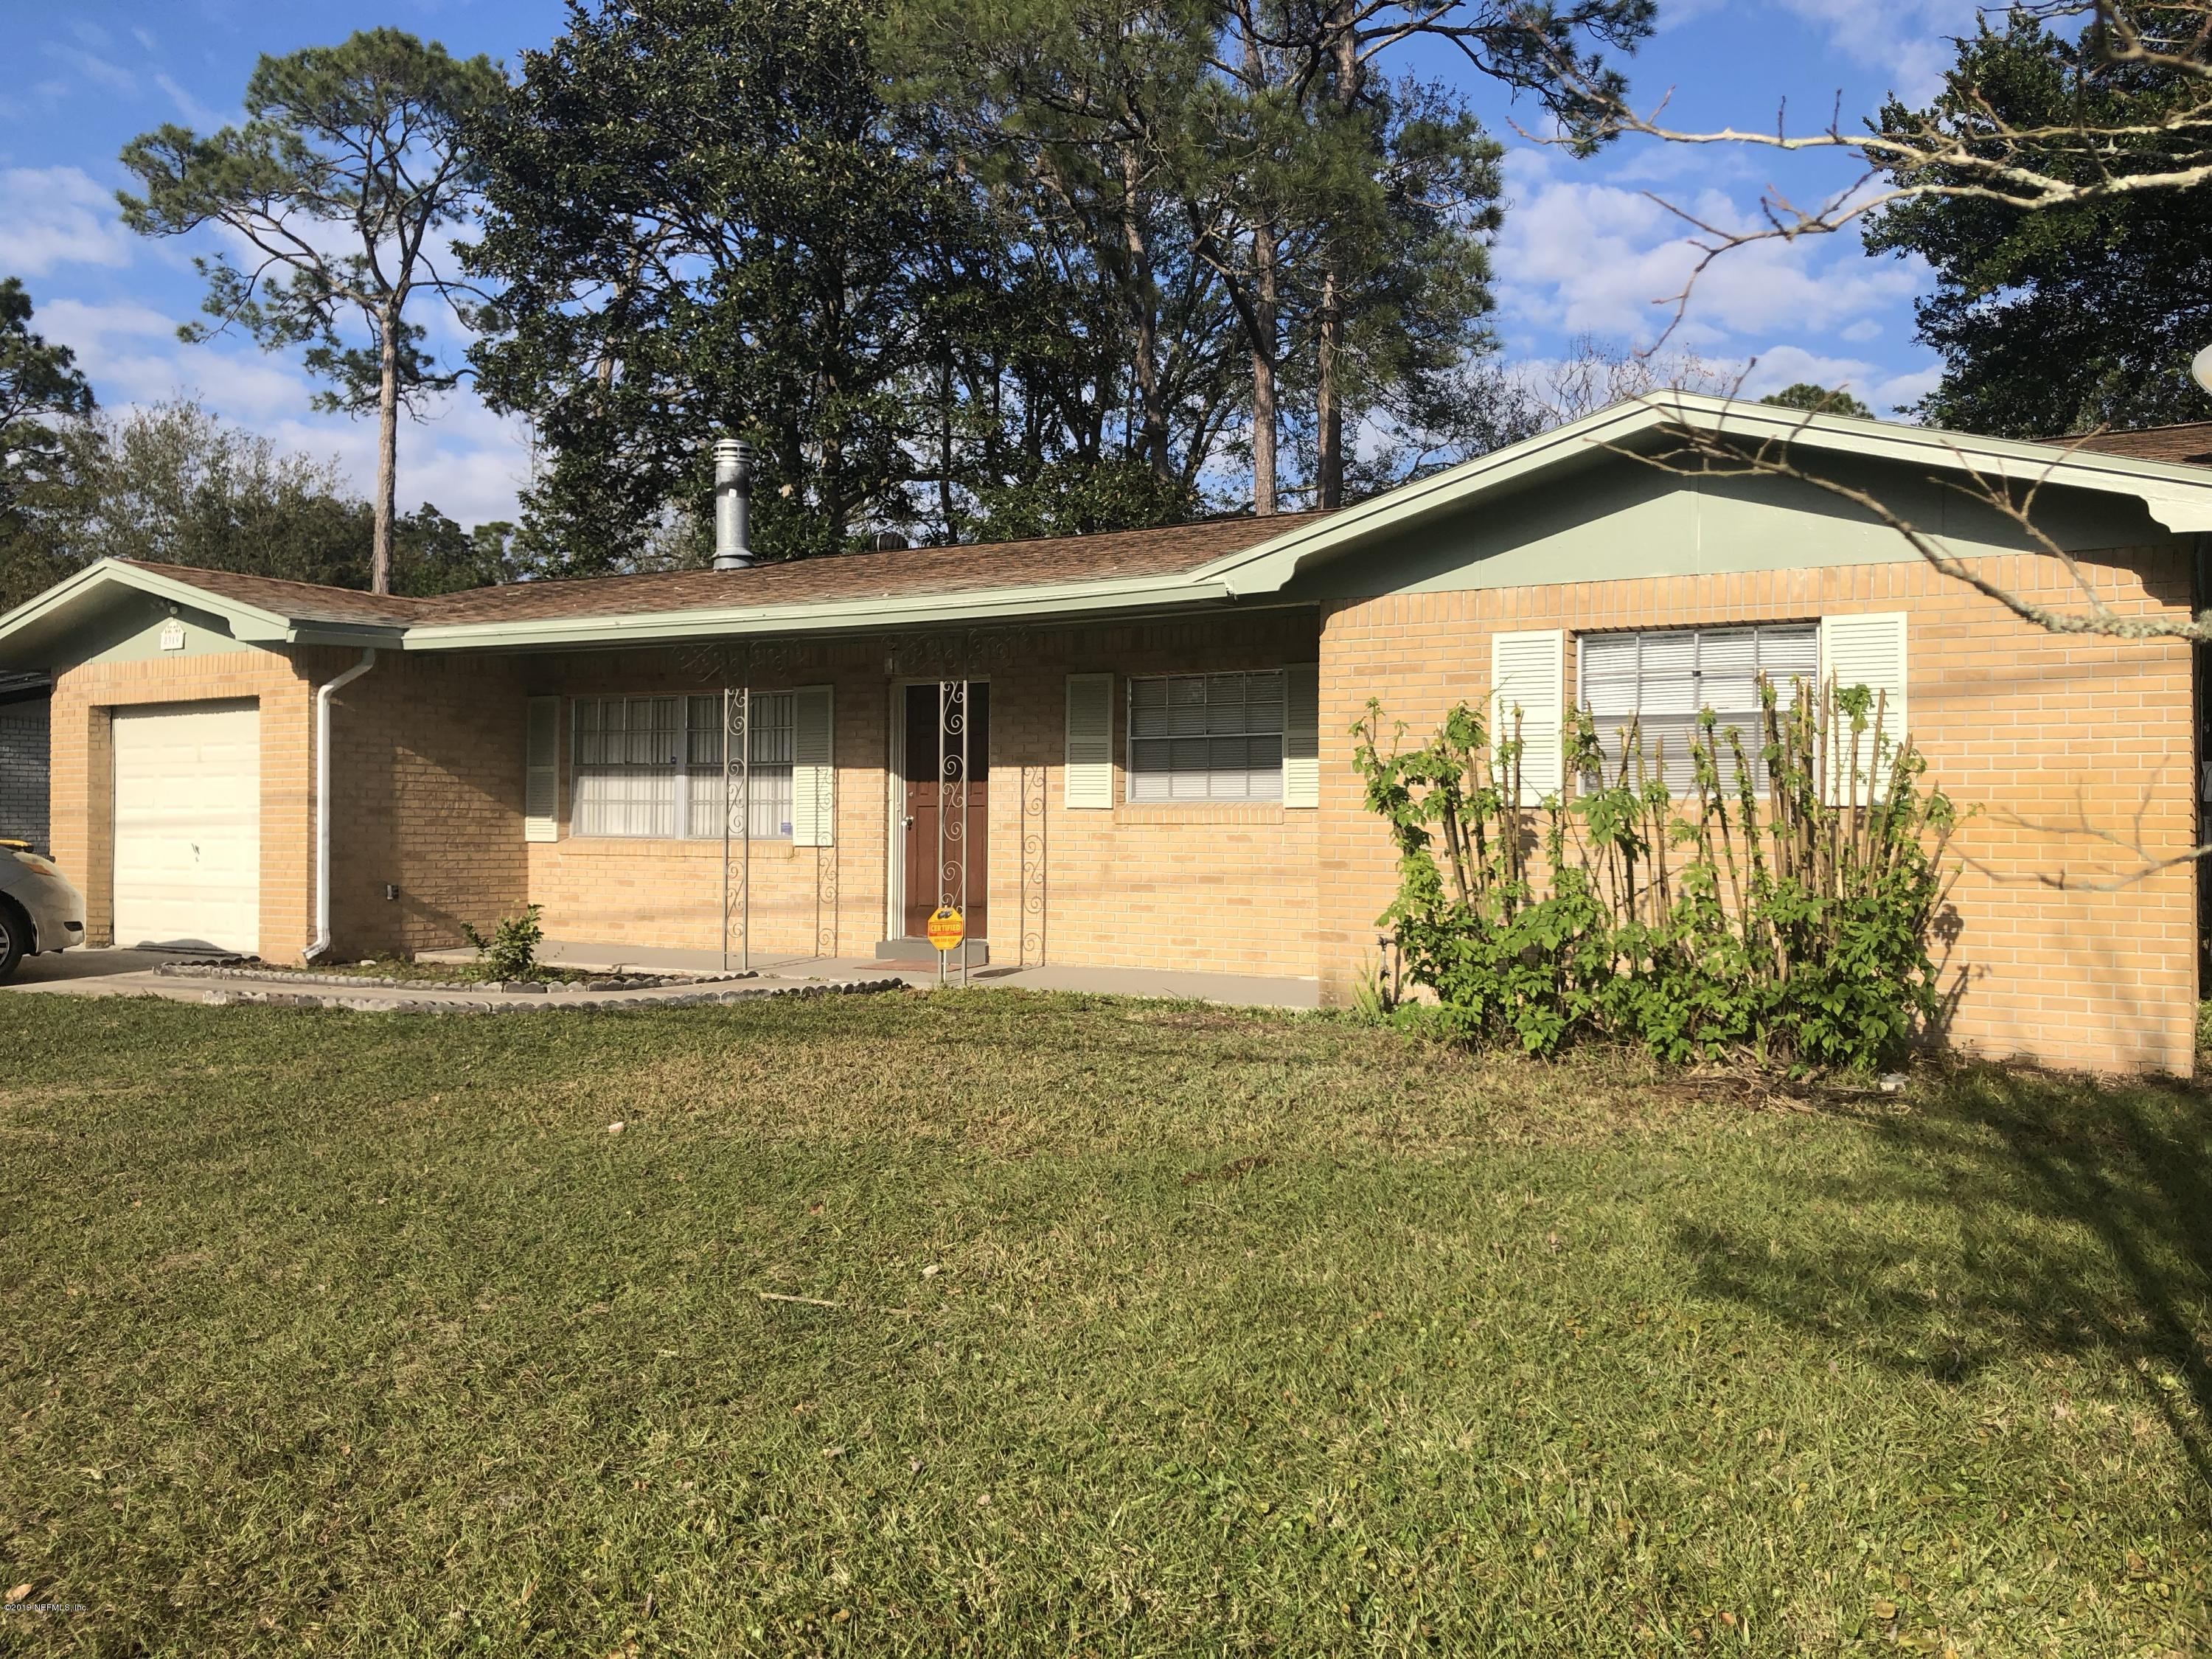 Photo of 8319 BARRACUDA, JACKSONVILLE, FL 32244